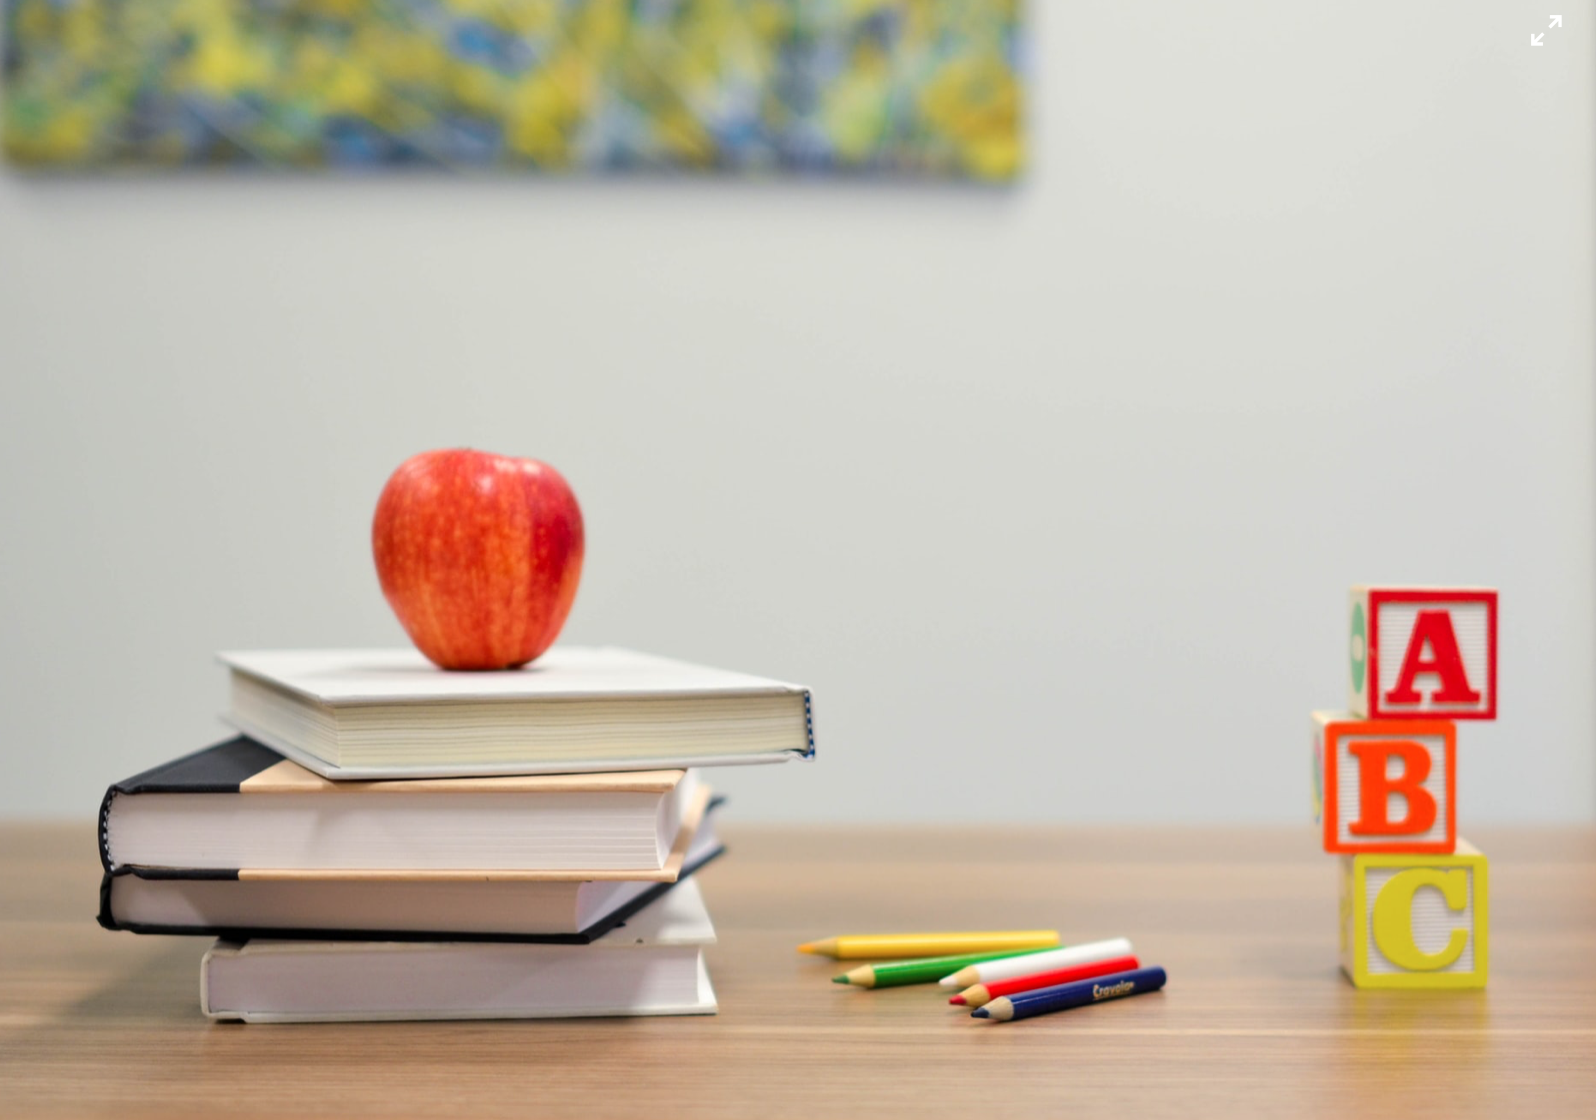 Picture of apple, building blocks, and books.